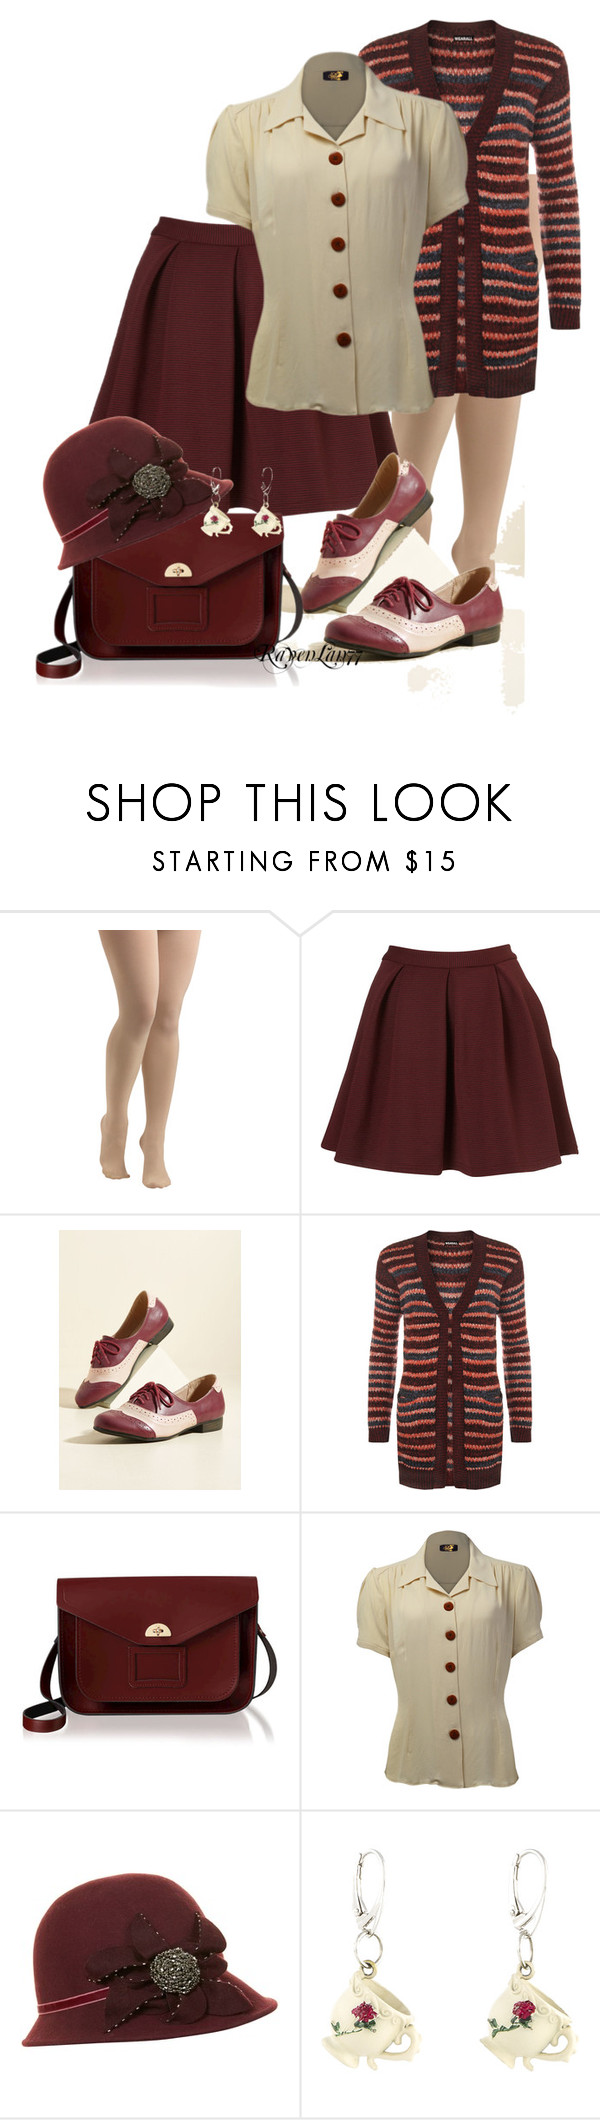 """""""Vintage Inspired Mini Skirt set 6"""" by ravenlancaster ❤ liked on Polyvore featuring Dear Creatures, WearAll, The Cambridge Satchel Company, Dickins & Jones, Christopher Kane, vintage, VintageInspired, oxblood, miniskirts and deepred"""